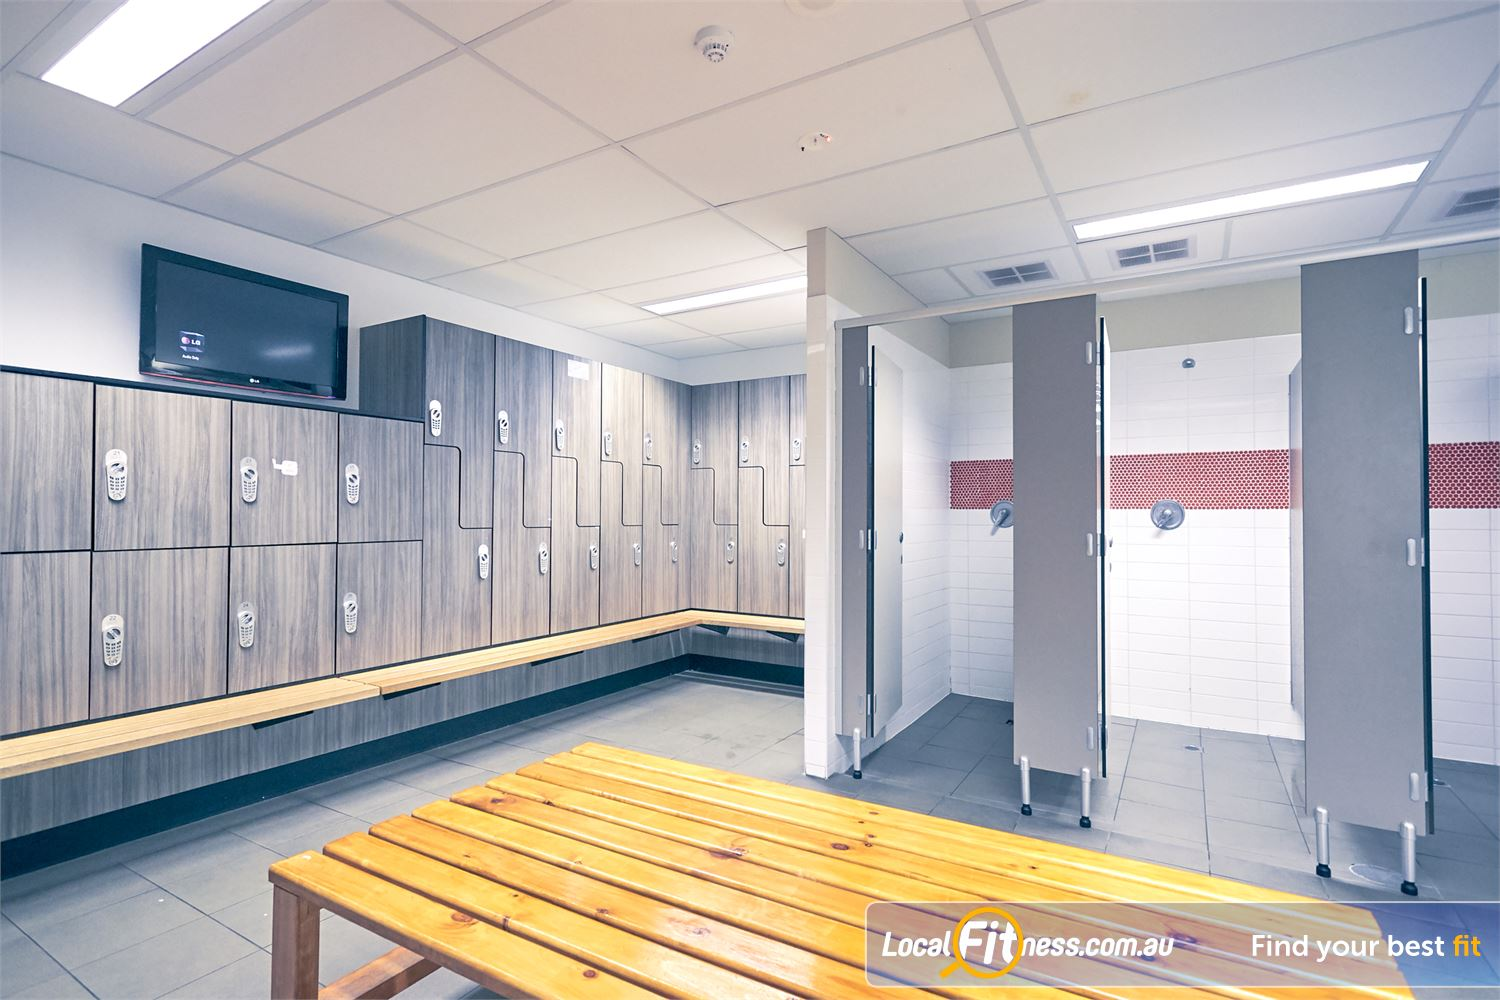 Goodlife Health Clubs Cross Roads Near Hawthorn Goodlife Cross Roads provides secure and spacious locker facilities.